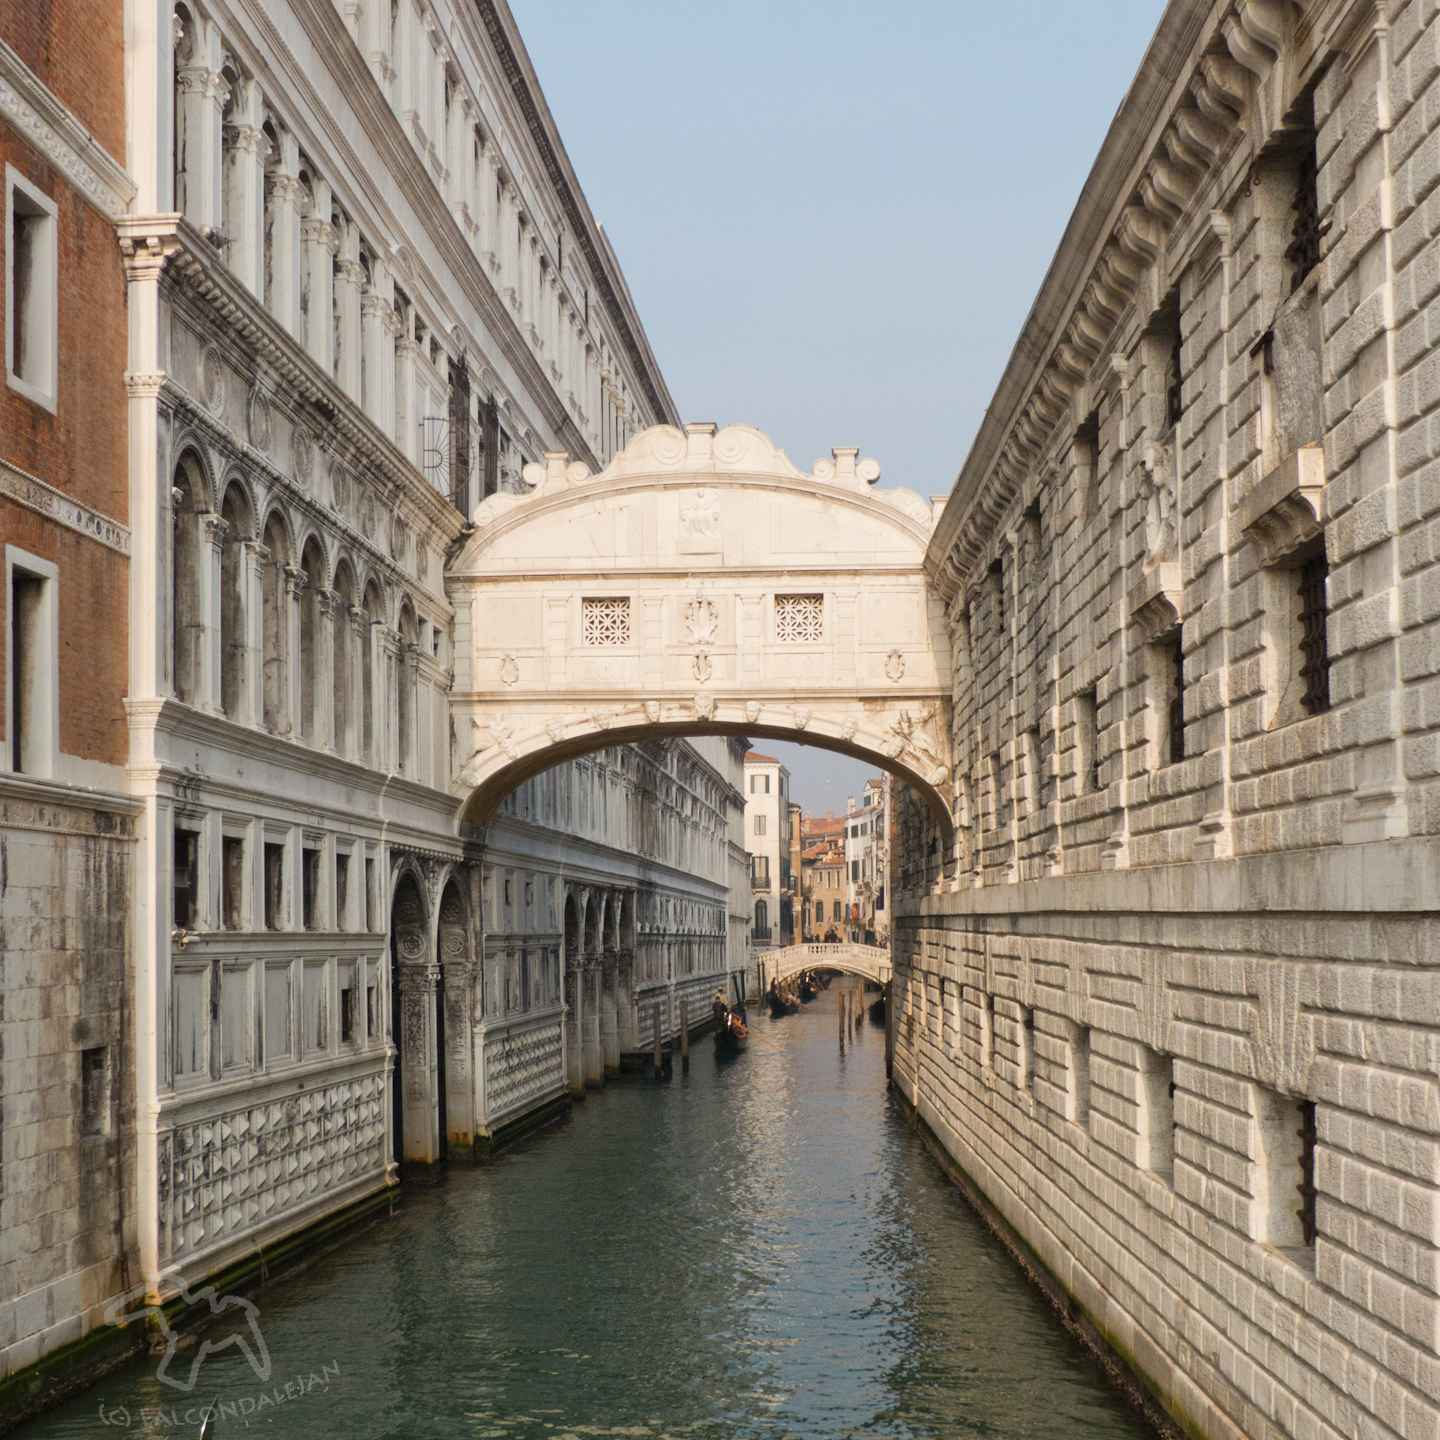 Can parents find romance in Venice with kids in tow or is it best to go without the children? Tips for Mums and Dads visiting the world's most romantic city. Plan a romantic trip to Venice with kids in tow on Falcondale Life blog. Image description: Venice bridge of sighs